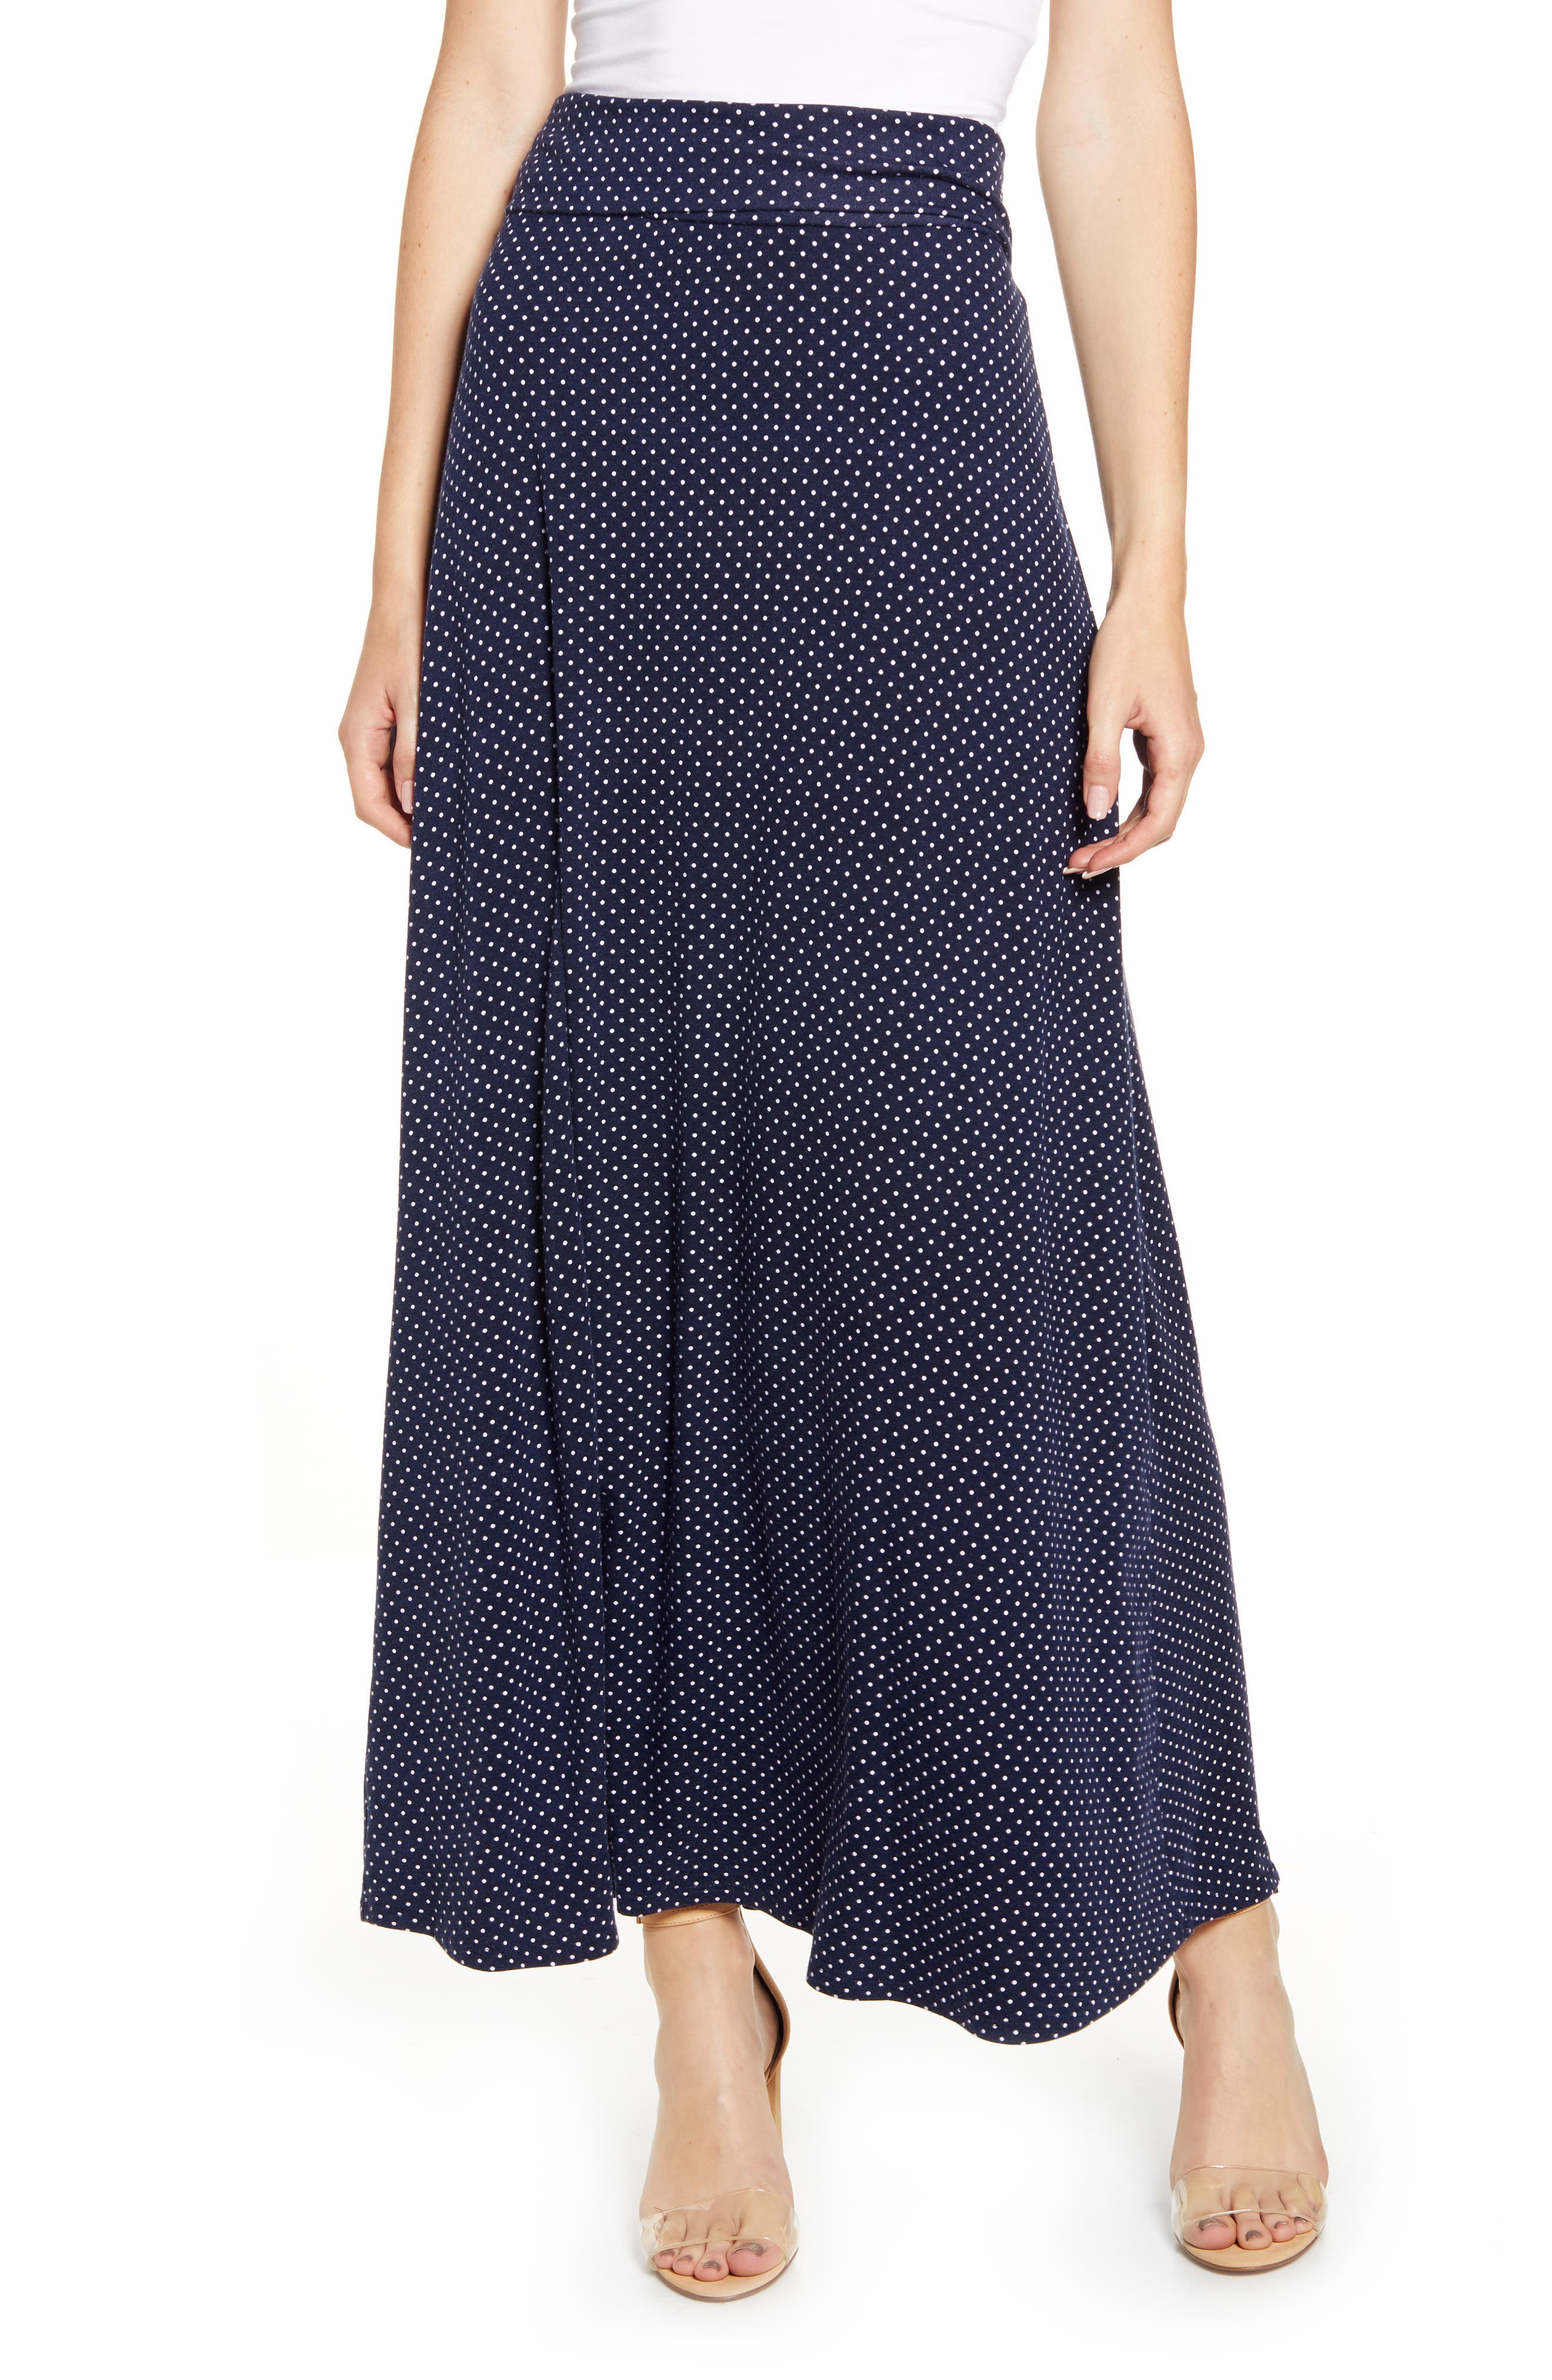 Blanketed in lively mini dots, this easy stretch-knit maxi is topped with a thick fold-over waistband and cut in a flowy silhouette Style Name: Loveappella Roll Top Maxi Skirt. Style Number: 5882497. Available in stores.